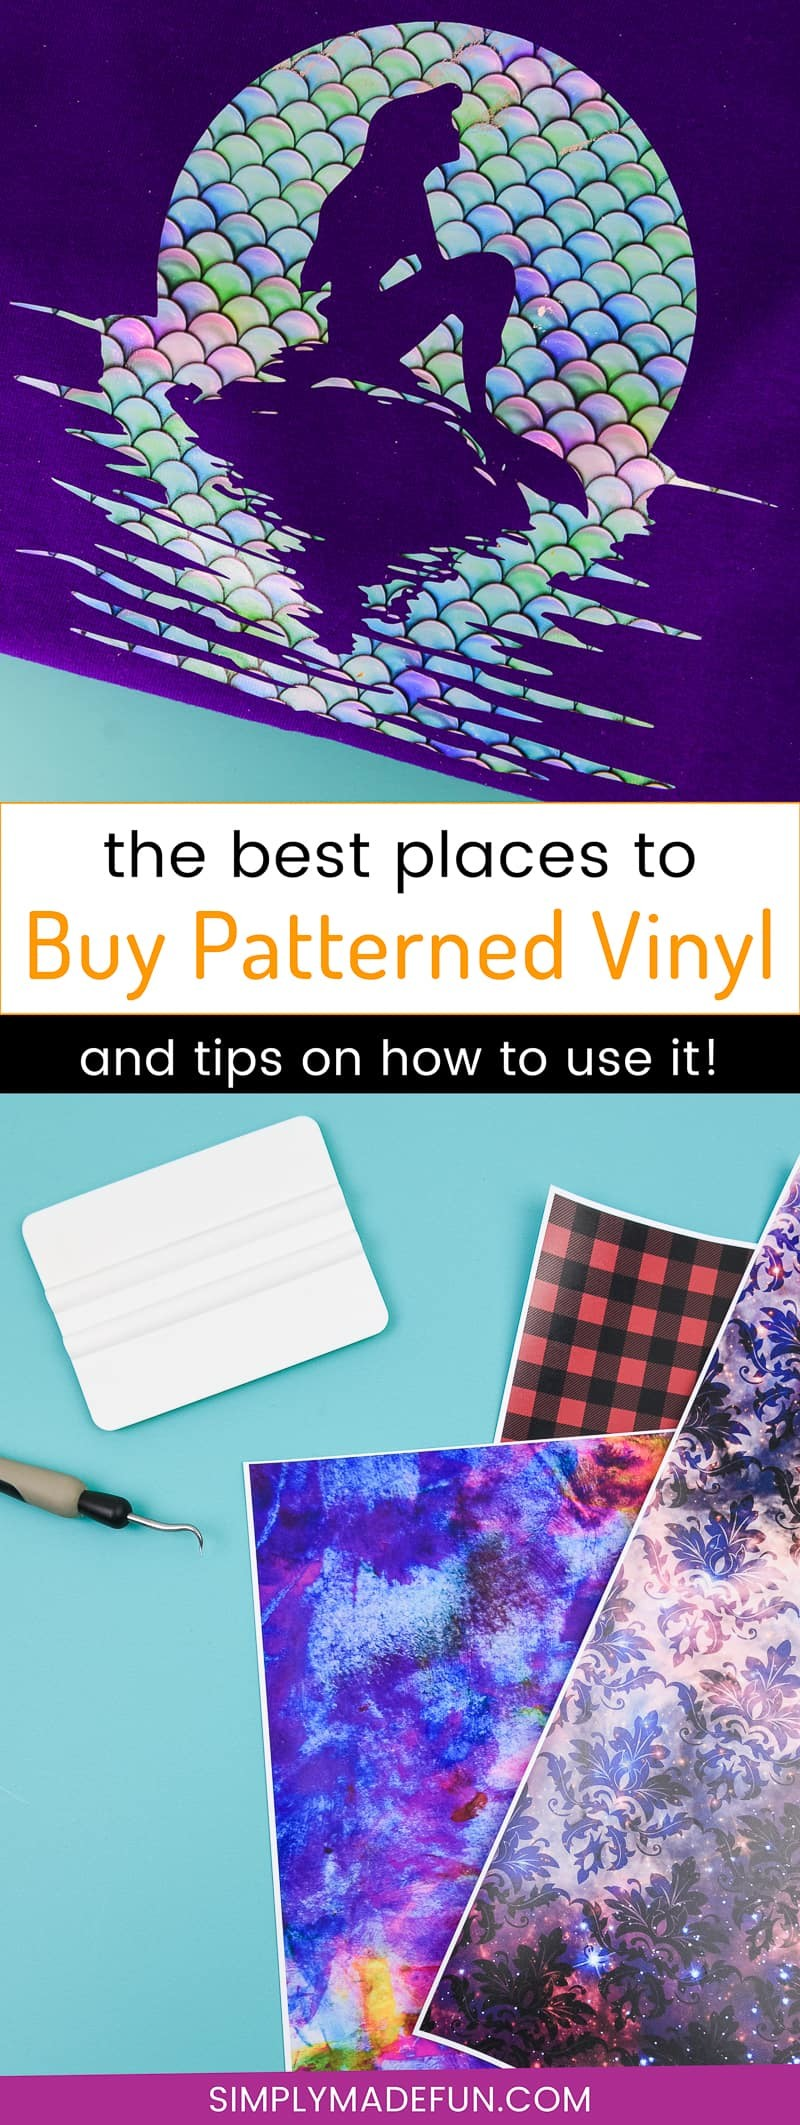 Buy Patterned Vinyl - Want to change up your vinyl game and find some cool new vinyl patterns to try for your projects? I've put together a list of my favorite places to buy patterned vinyl (heat transfer and permanent vinyl!) for your next Silhouette Cameo or Cricut project!